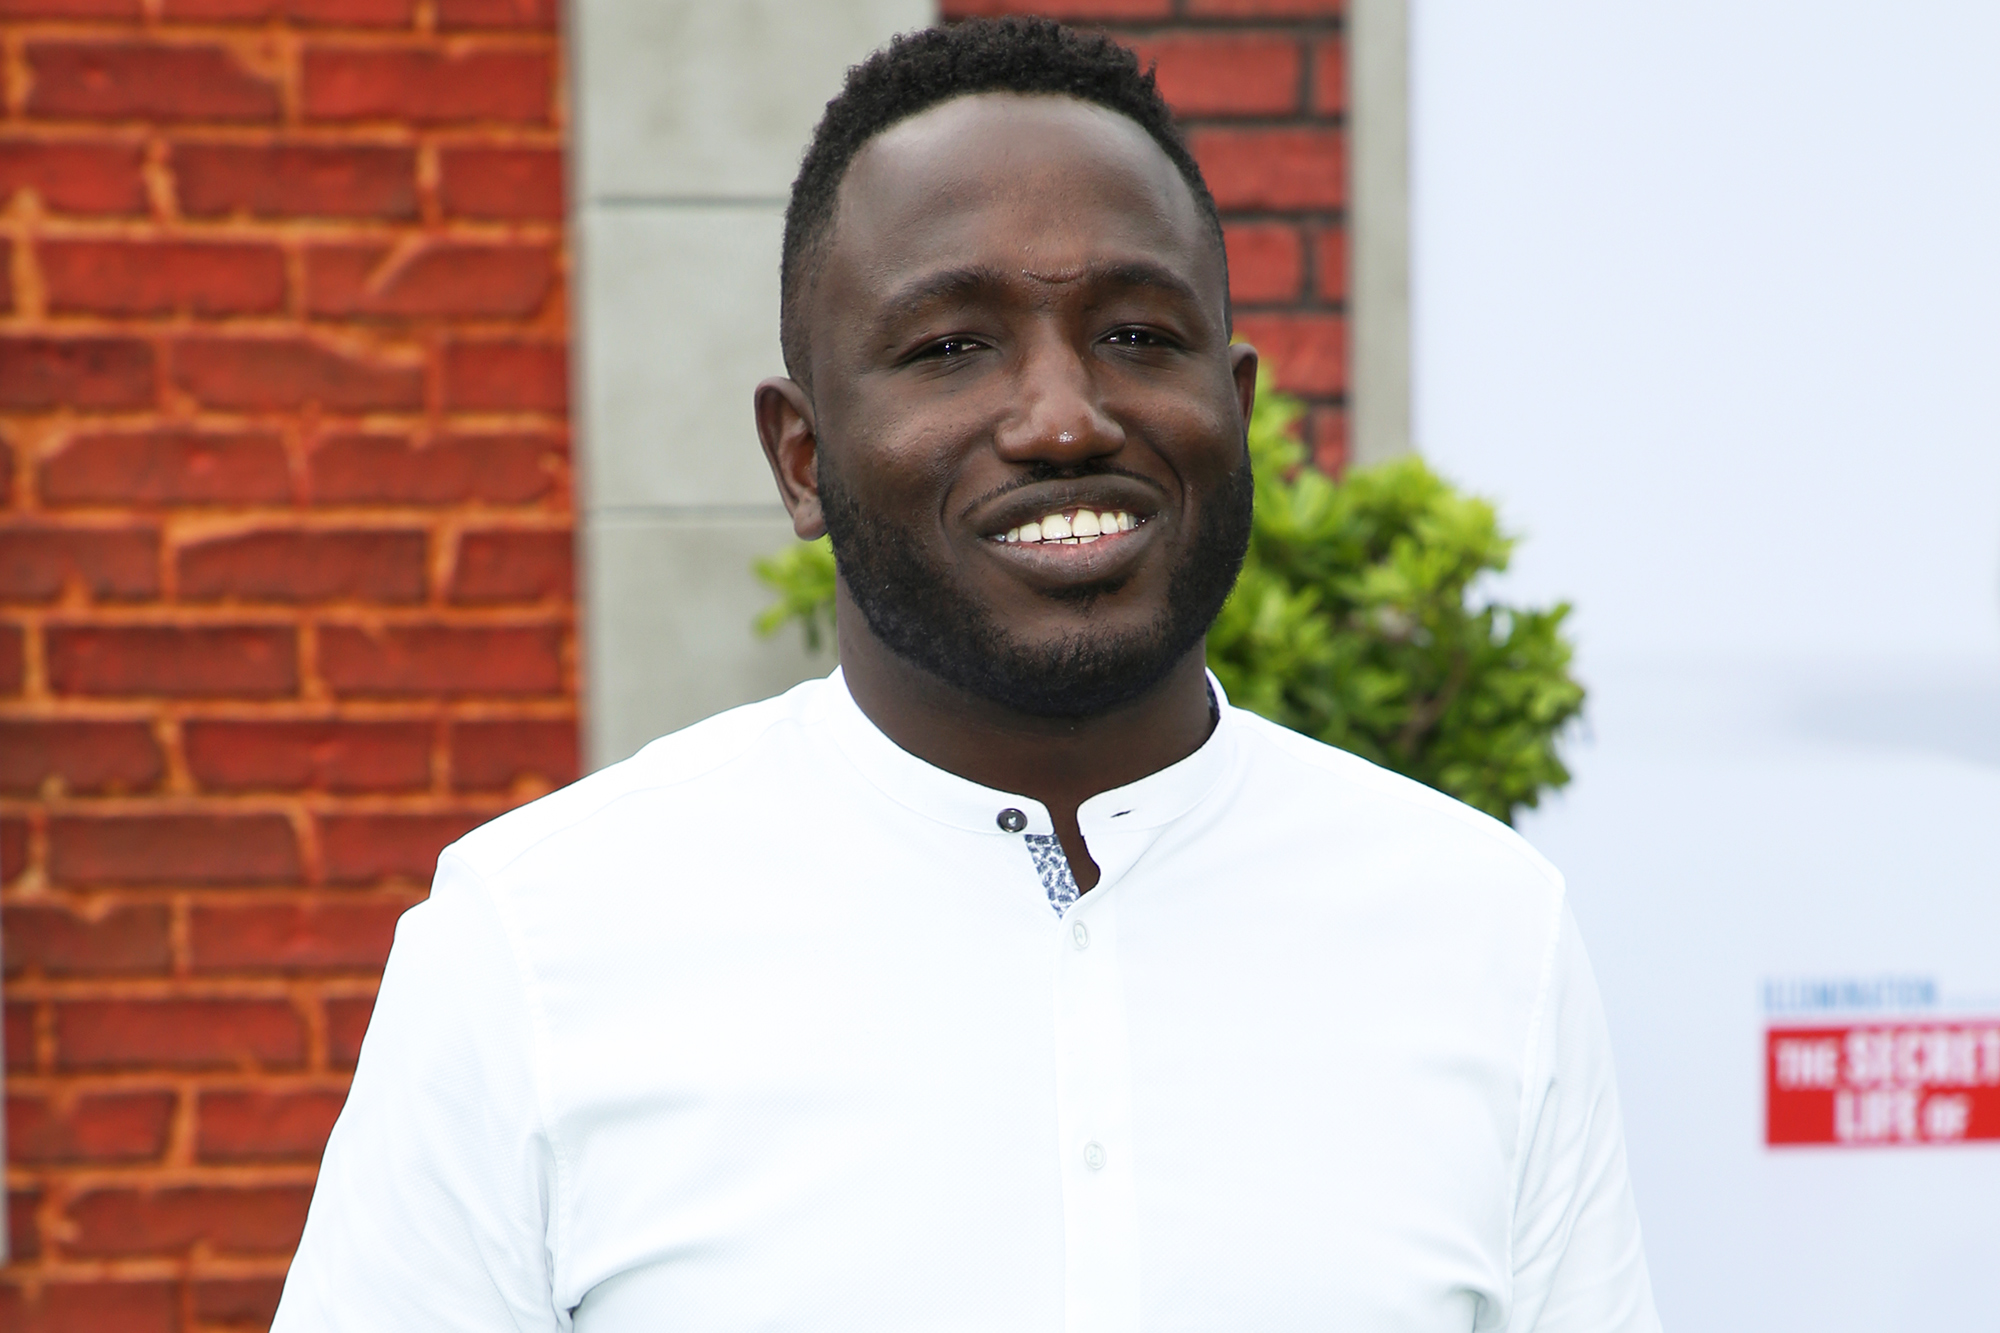 """Hannibal Buress attends the premiere of Universal Pictures' """"The Secret Life Of Pets 2"""" at Regency Village Theatre on June 02, 2019 in Westwood, California."""